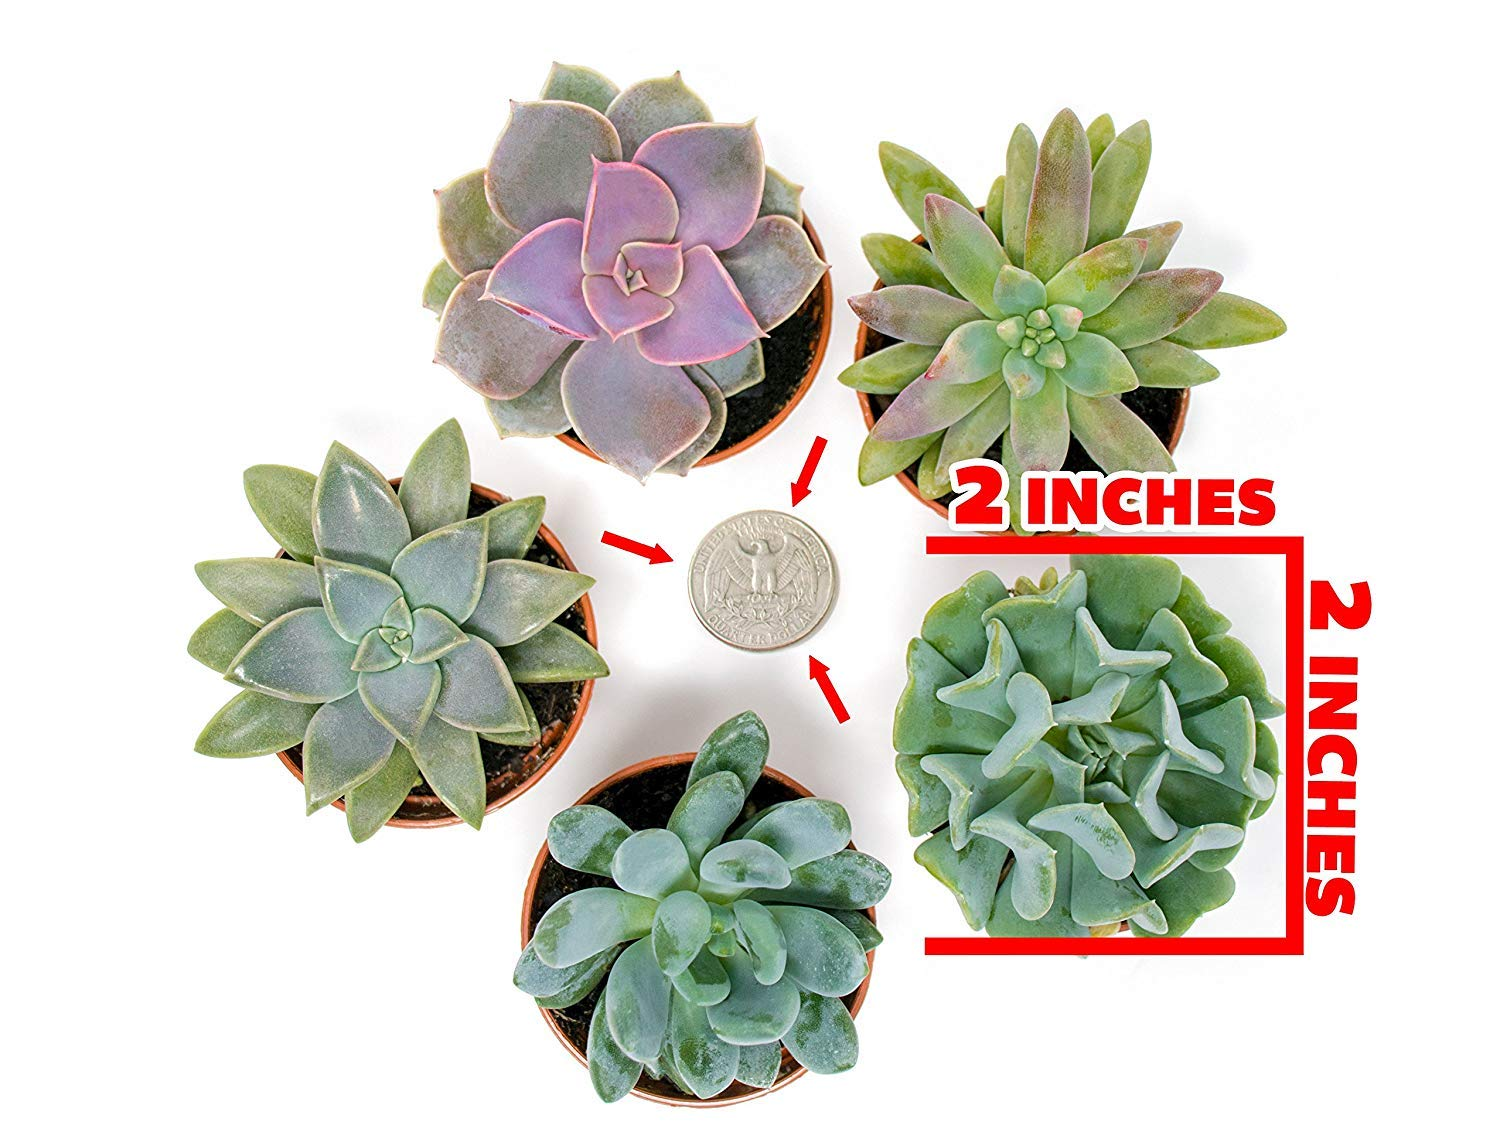 Succulent Plants (5 Pack), Fully Rooted in Planter Pots with Soil - Real Live Potted Succulents / Unique Indoor Cactus… 2 HAND SELECTED: Every pack of succulents we send is hand-picked. You will receive a unique collection of species that are FULLY ROOTED IN 2 INCH POTS, which will be similar to the product photos (see photo 2 for scale). Note that we rotate our nursery stock often, so the exact species we send changes every week. THE EASIEST HOUSE PLANTS: More appealing than artificial plastic or fake faux plants, and care is a cinch. If you think you can't keep houseplants alive, you're wrong; our succulents don't require fertilizer and can be planted in a decorative pot of your choice within seconds. DIY HOME DECOR: The possibilities are only limited by your imagination; display them in a plant holder, a wall mount, a geometric glass vase, or even in a live wreath. Because of their amazingly low care requirements, they can even make the perfect desk centerpiece for your office.